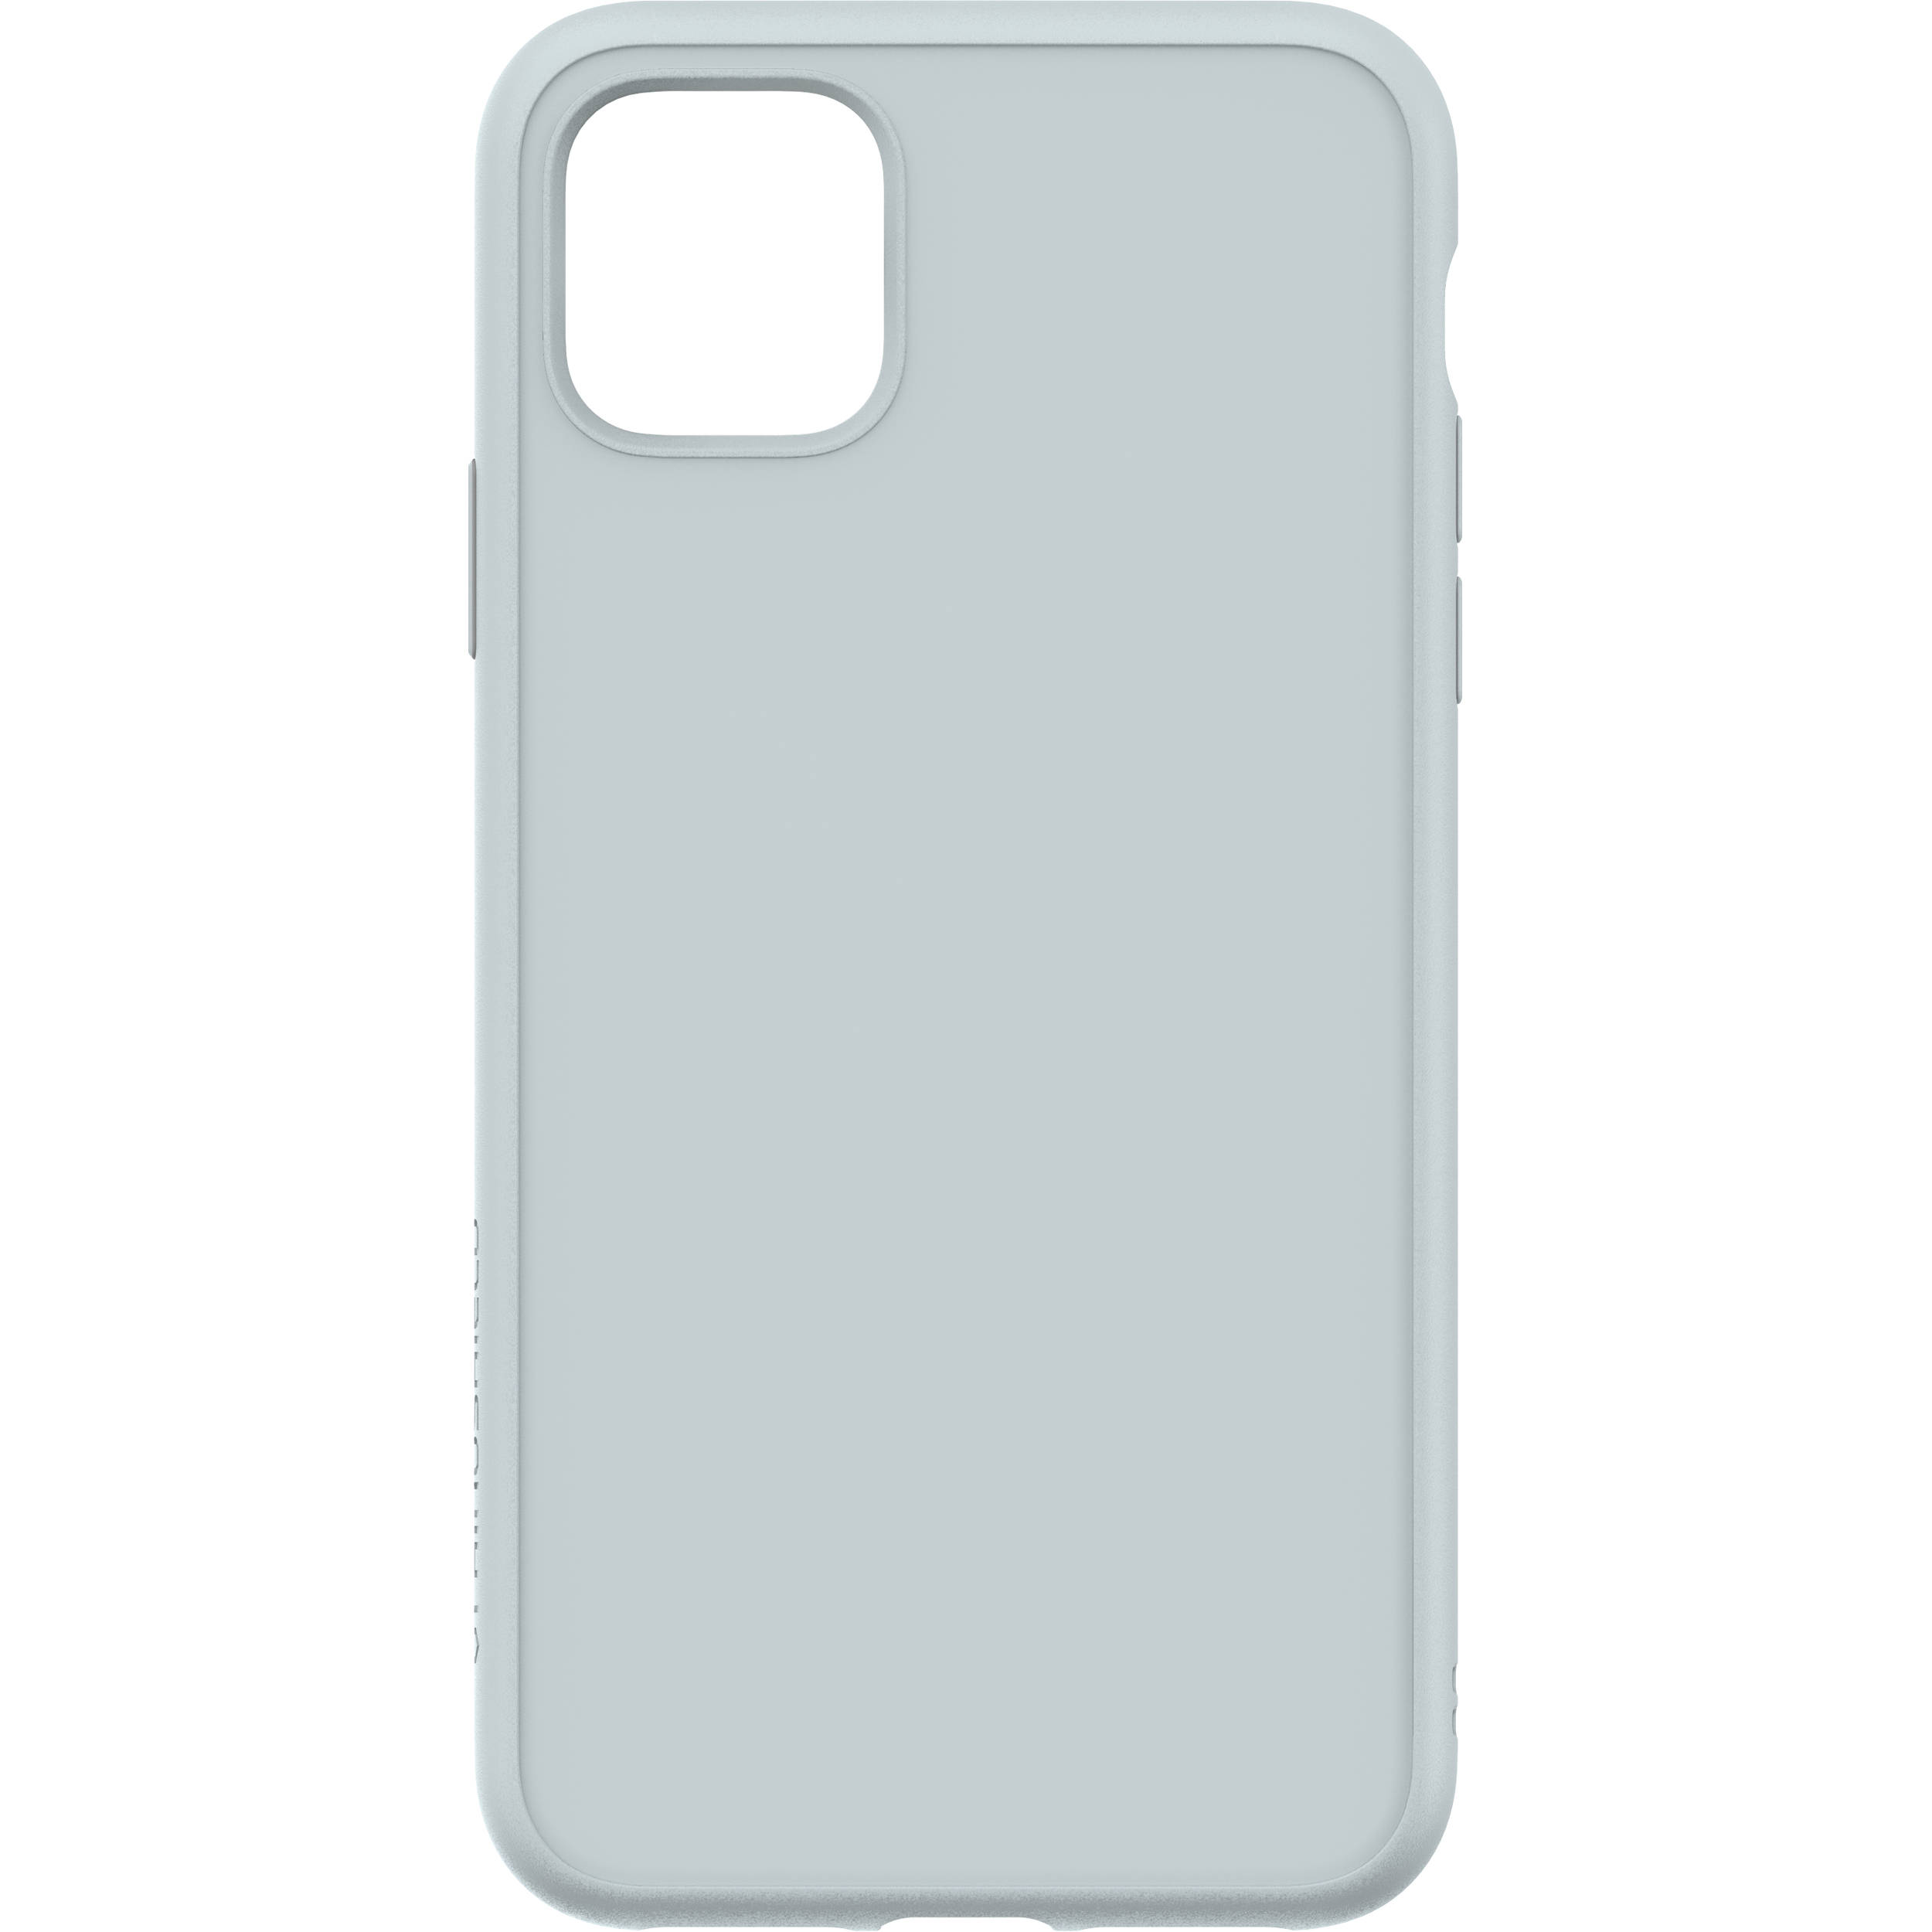 Rhinoshield Solidsuit Case For Iphone 11 Pro Max Ssa0114954 B H